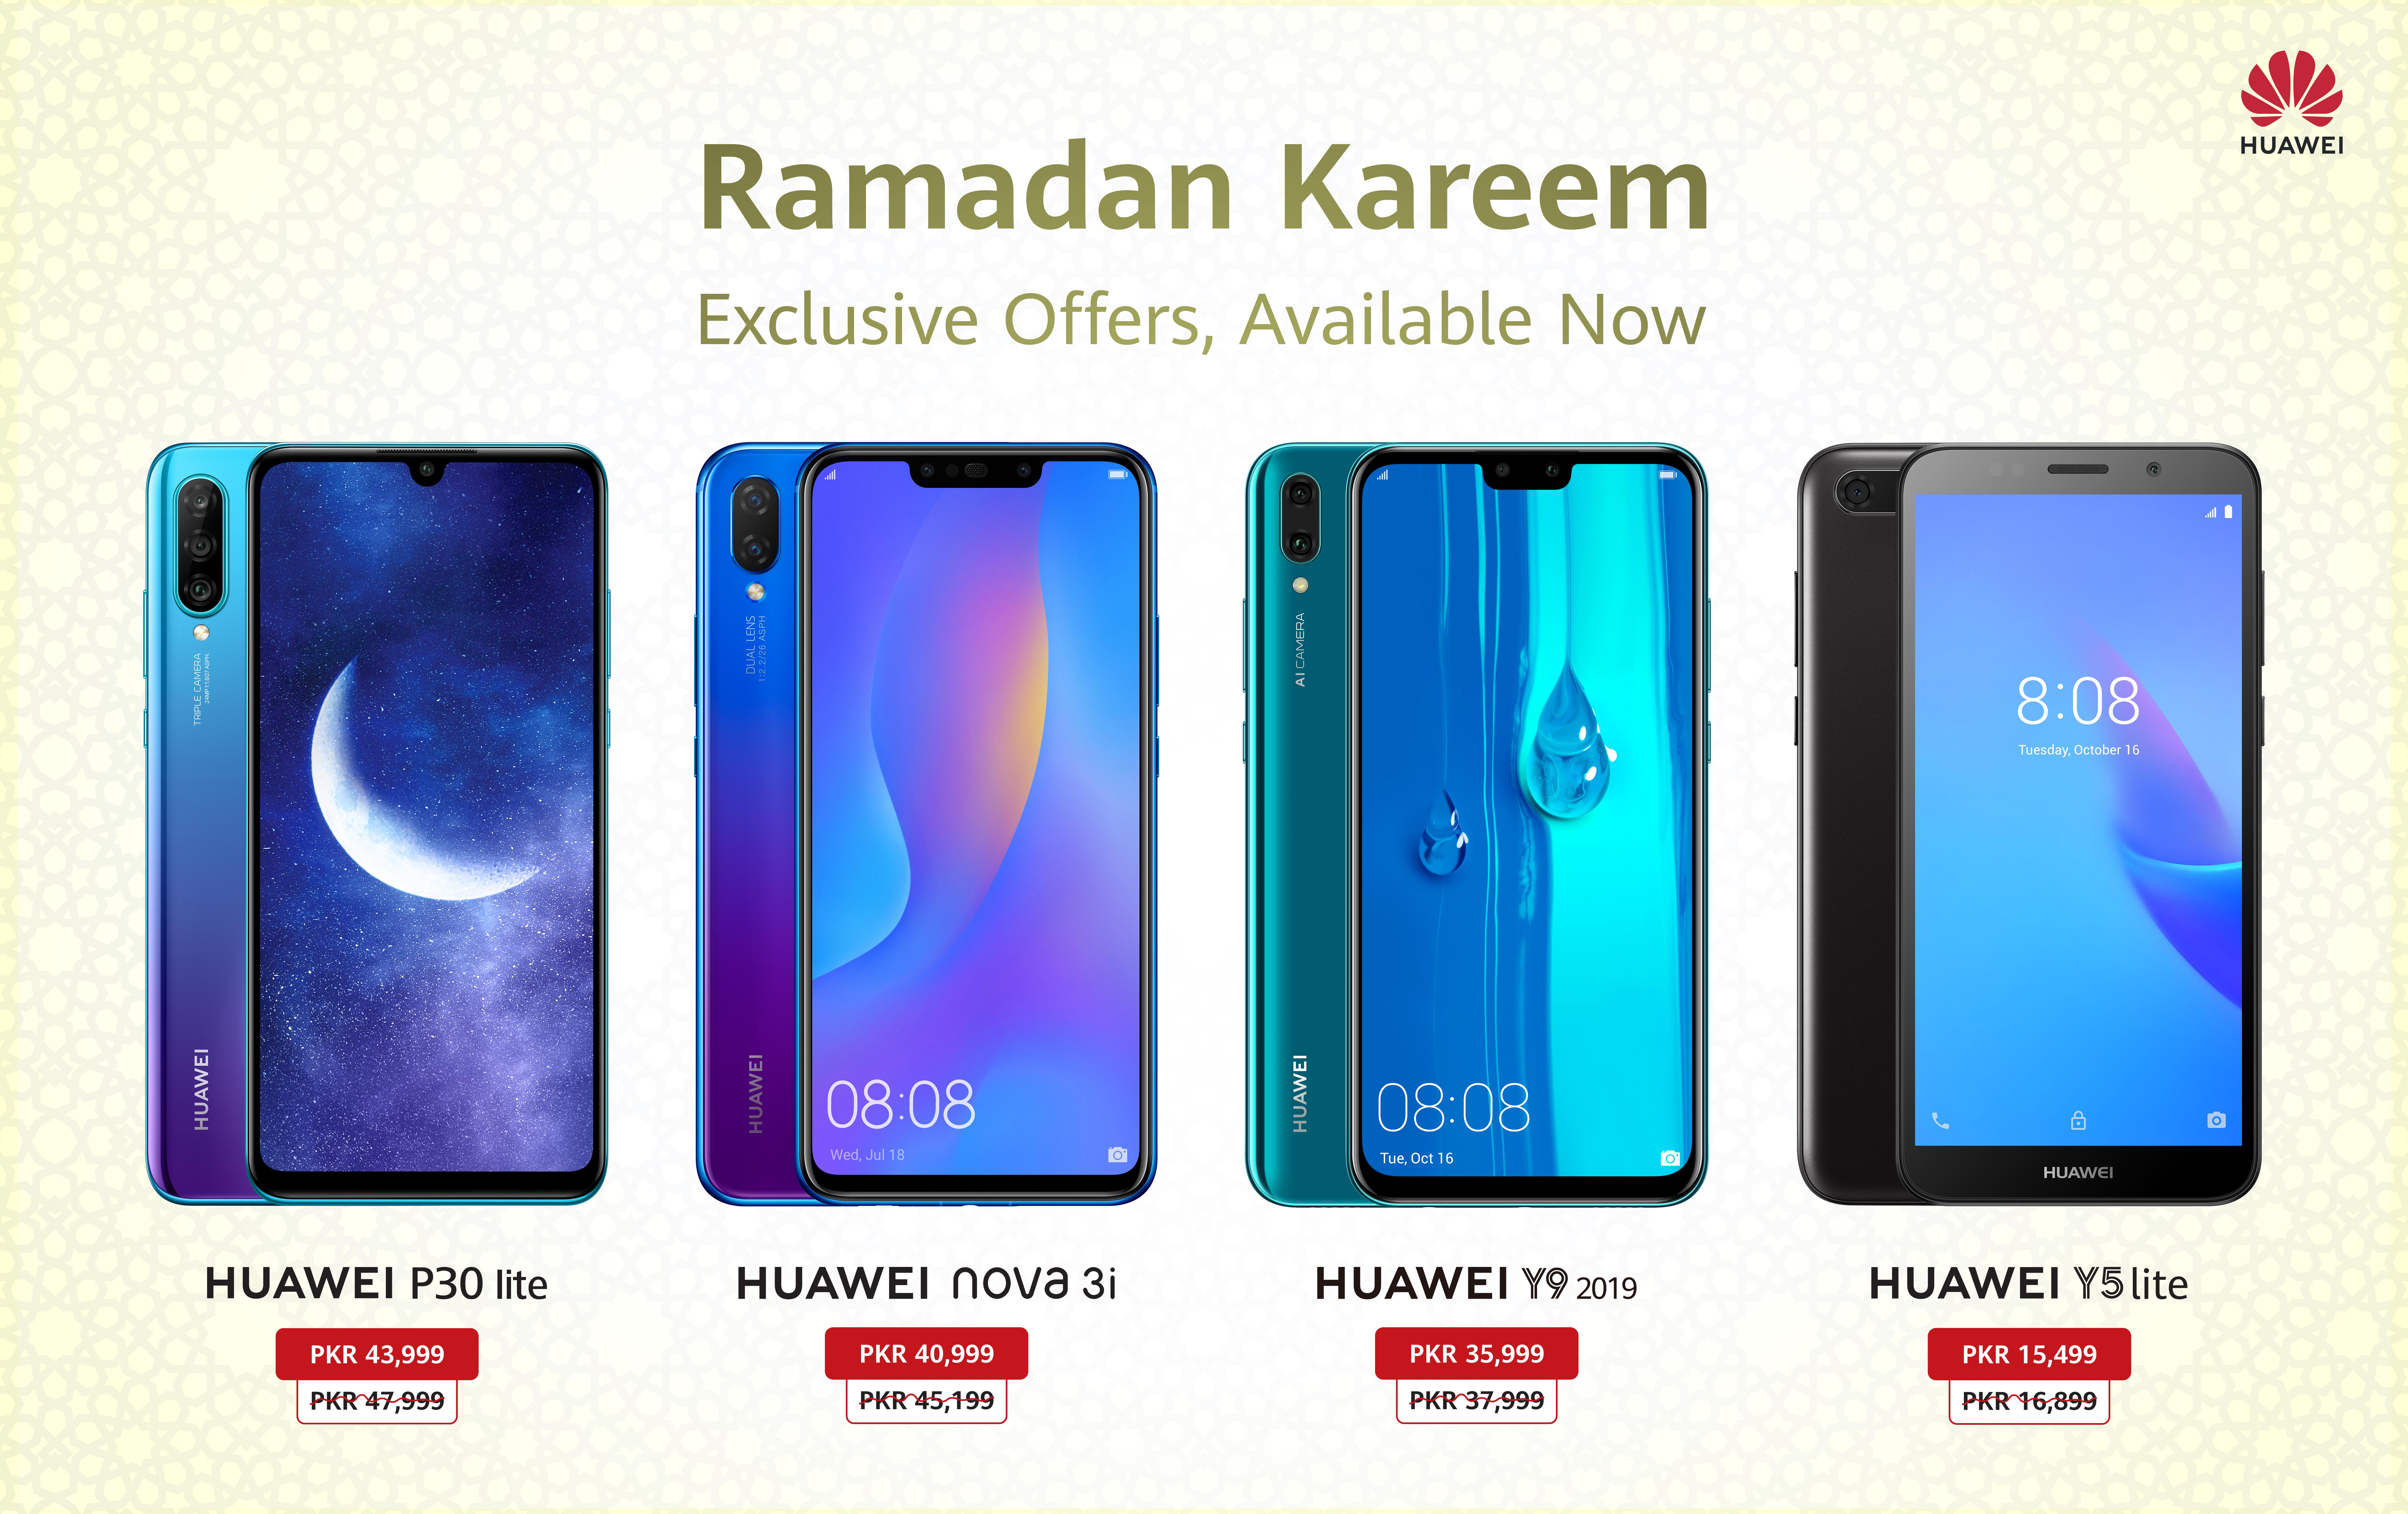 Exclusive Ramadan Offer On HUAWEI P30 lite and Other Huawei